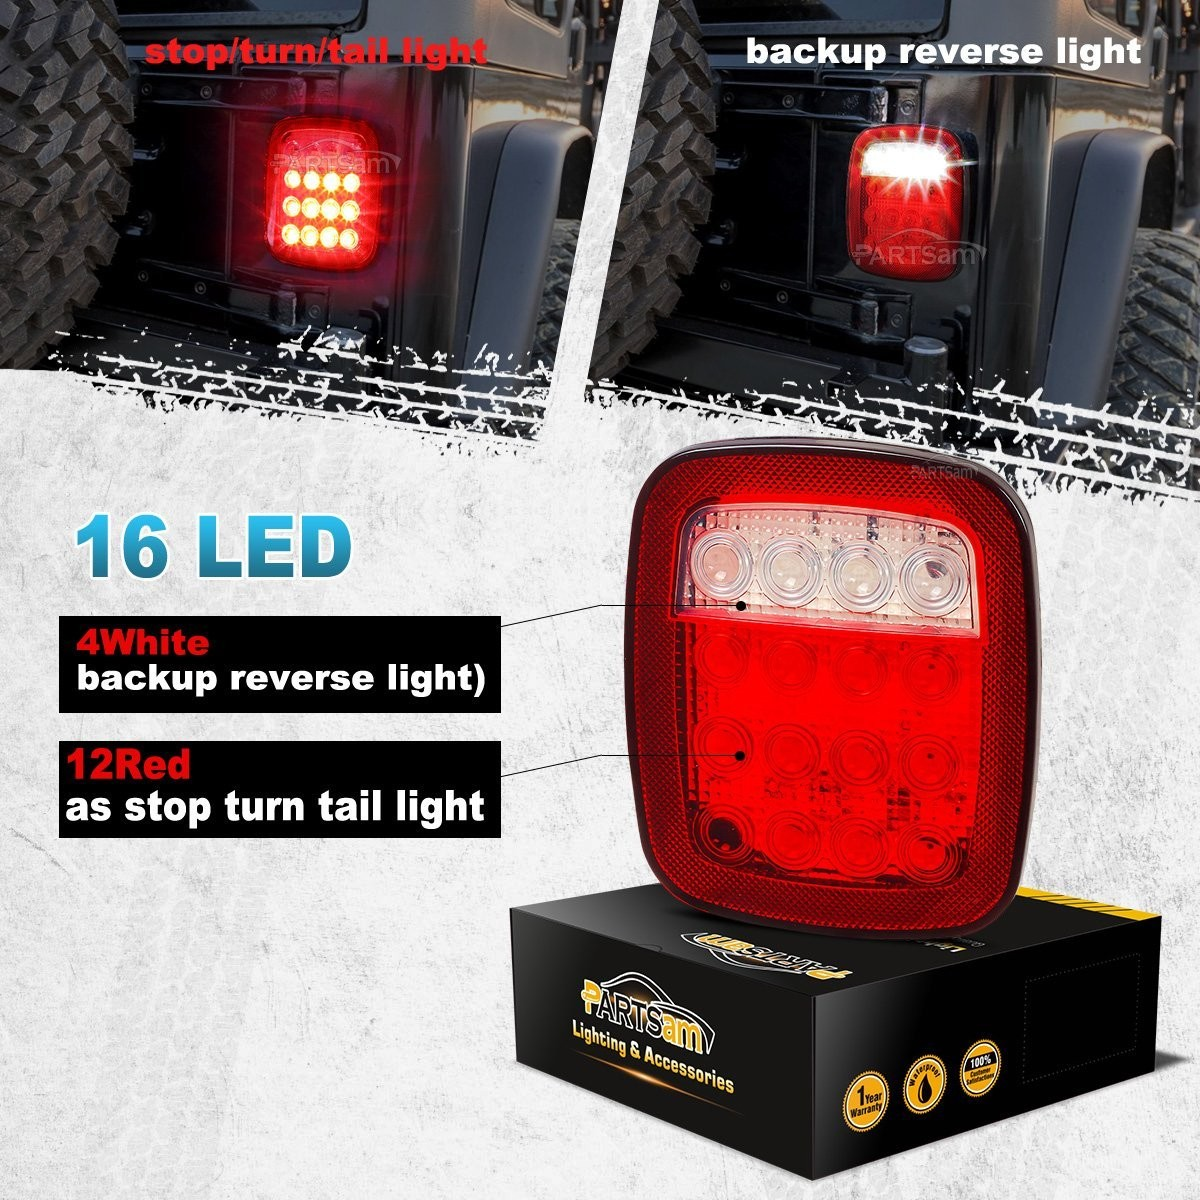 Amazon Partsam 2x Universal 16 LED Stop Tail Turn Signal Backup Reverse Brake Clearance Marker Lights Lamps Red White for Truck Trailer Jeep YJ JK CJ